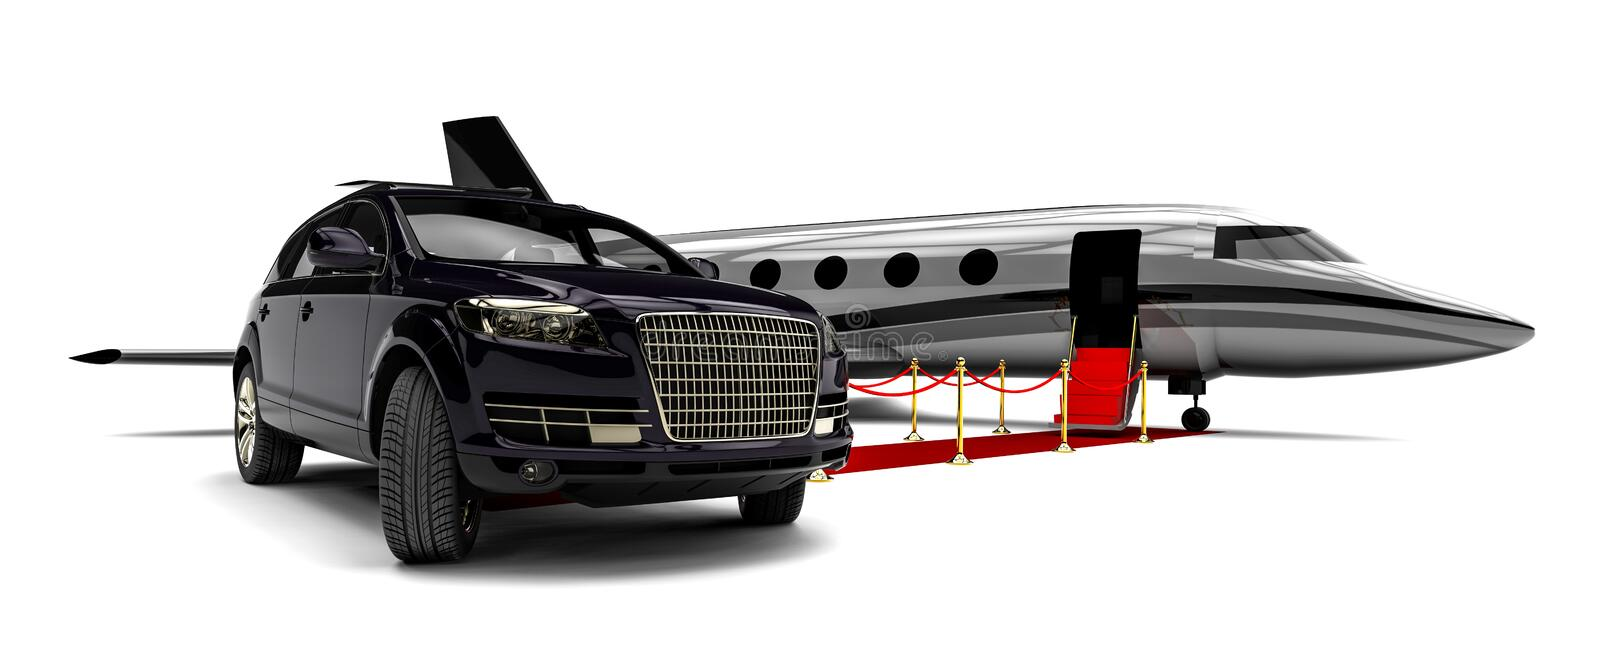 Jet plane with a luxury SUV and a red carpet royalty free illustration